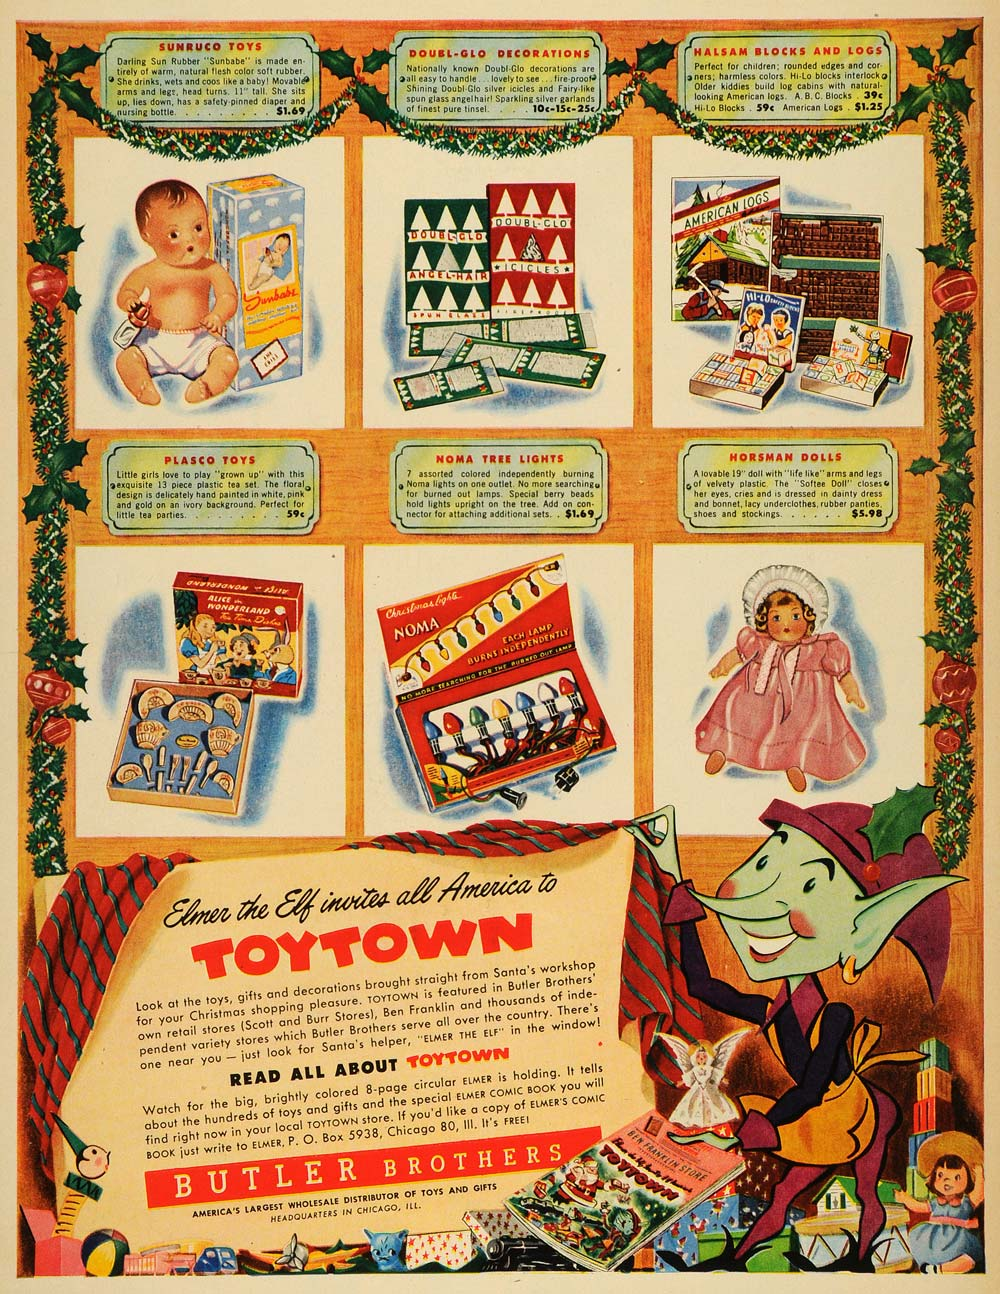 1949 Ad Elmer Elf Toytown Butler Brothers Plasco Sunruco Toys Doubl-Glo LF3